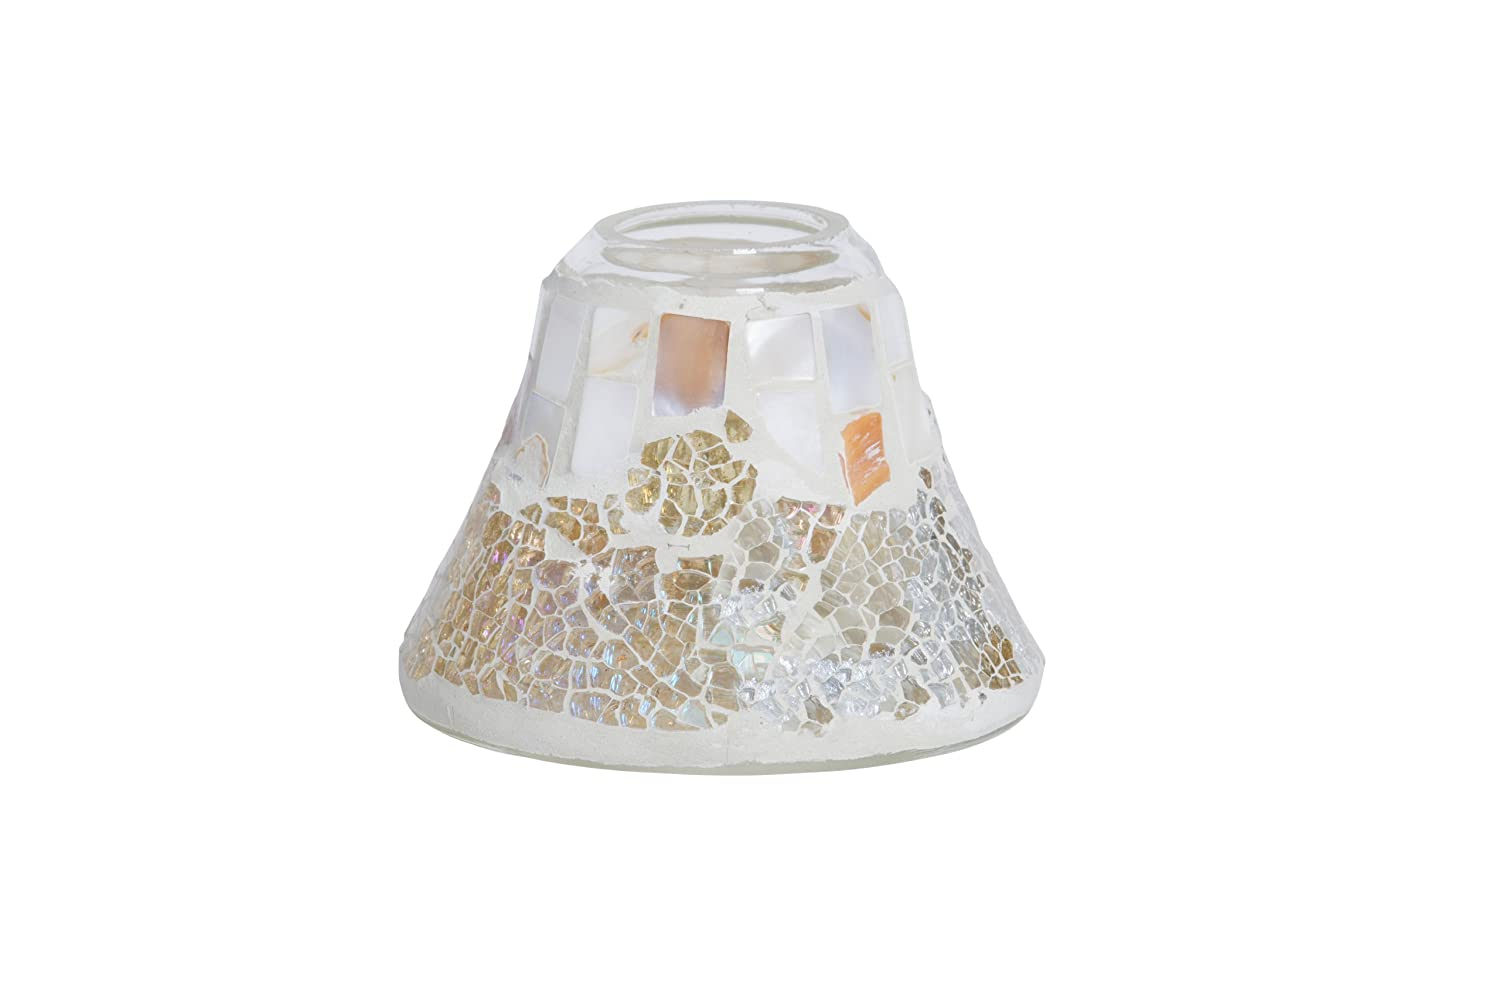 YANKEE CANDLE Lampenschirm 'Gold & Pearl Crackle' fŸr 104 g HGP300